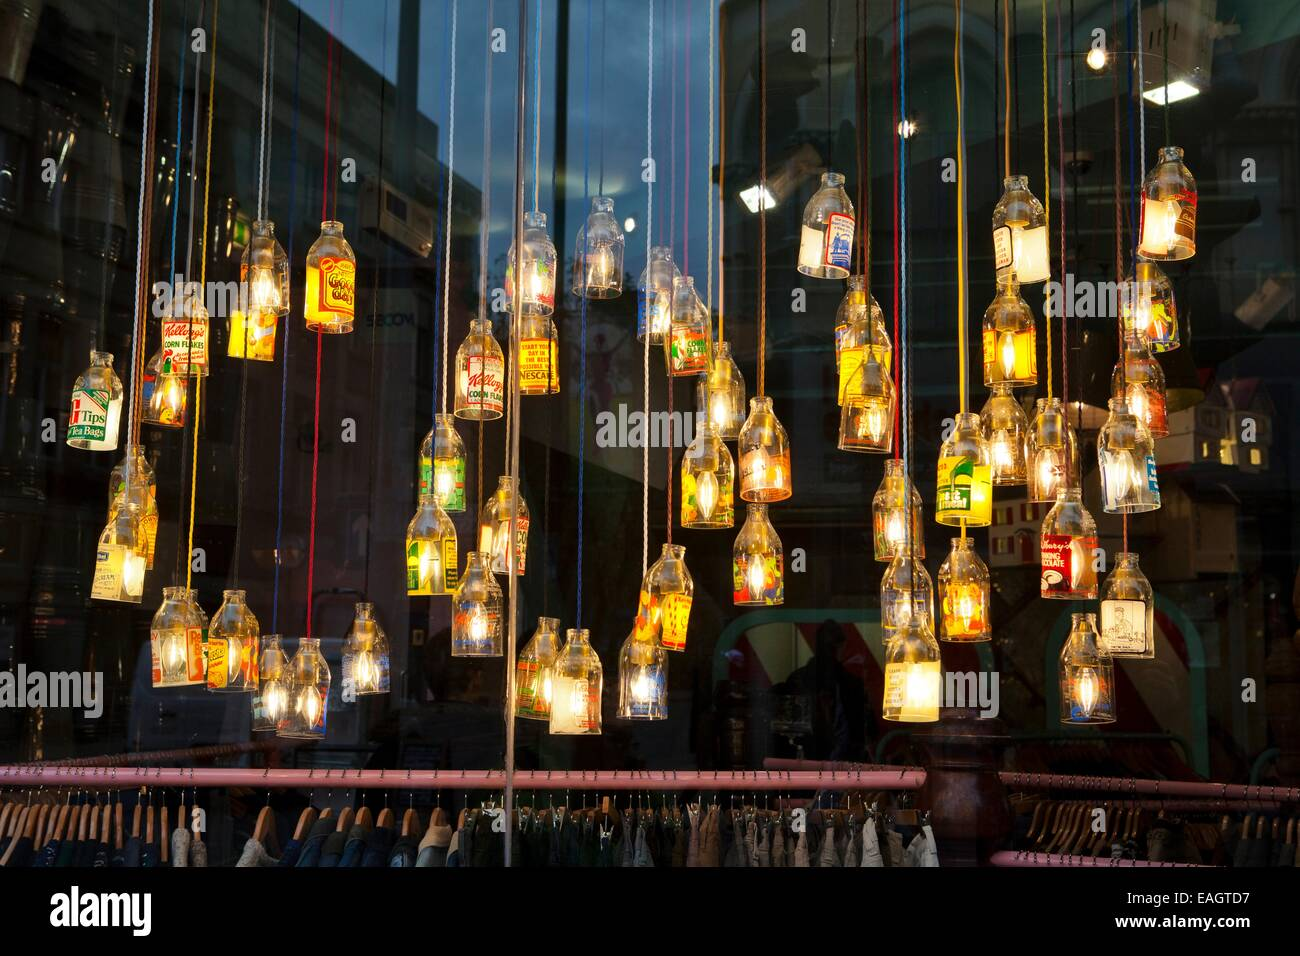 'Cow' clothing store with broken bottles as lights & lamp shades,lighting, energy, power, equipment, - Stock Image